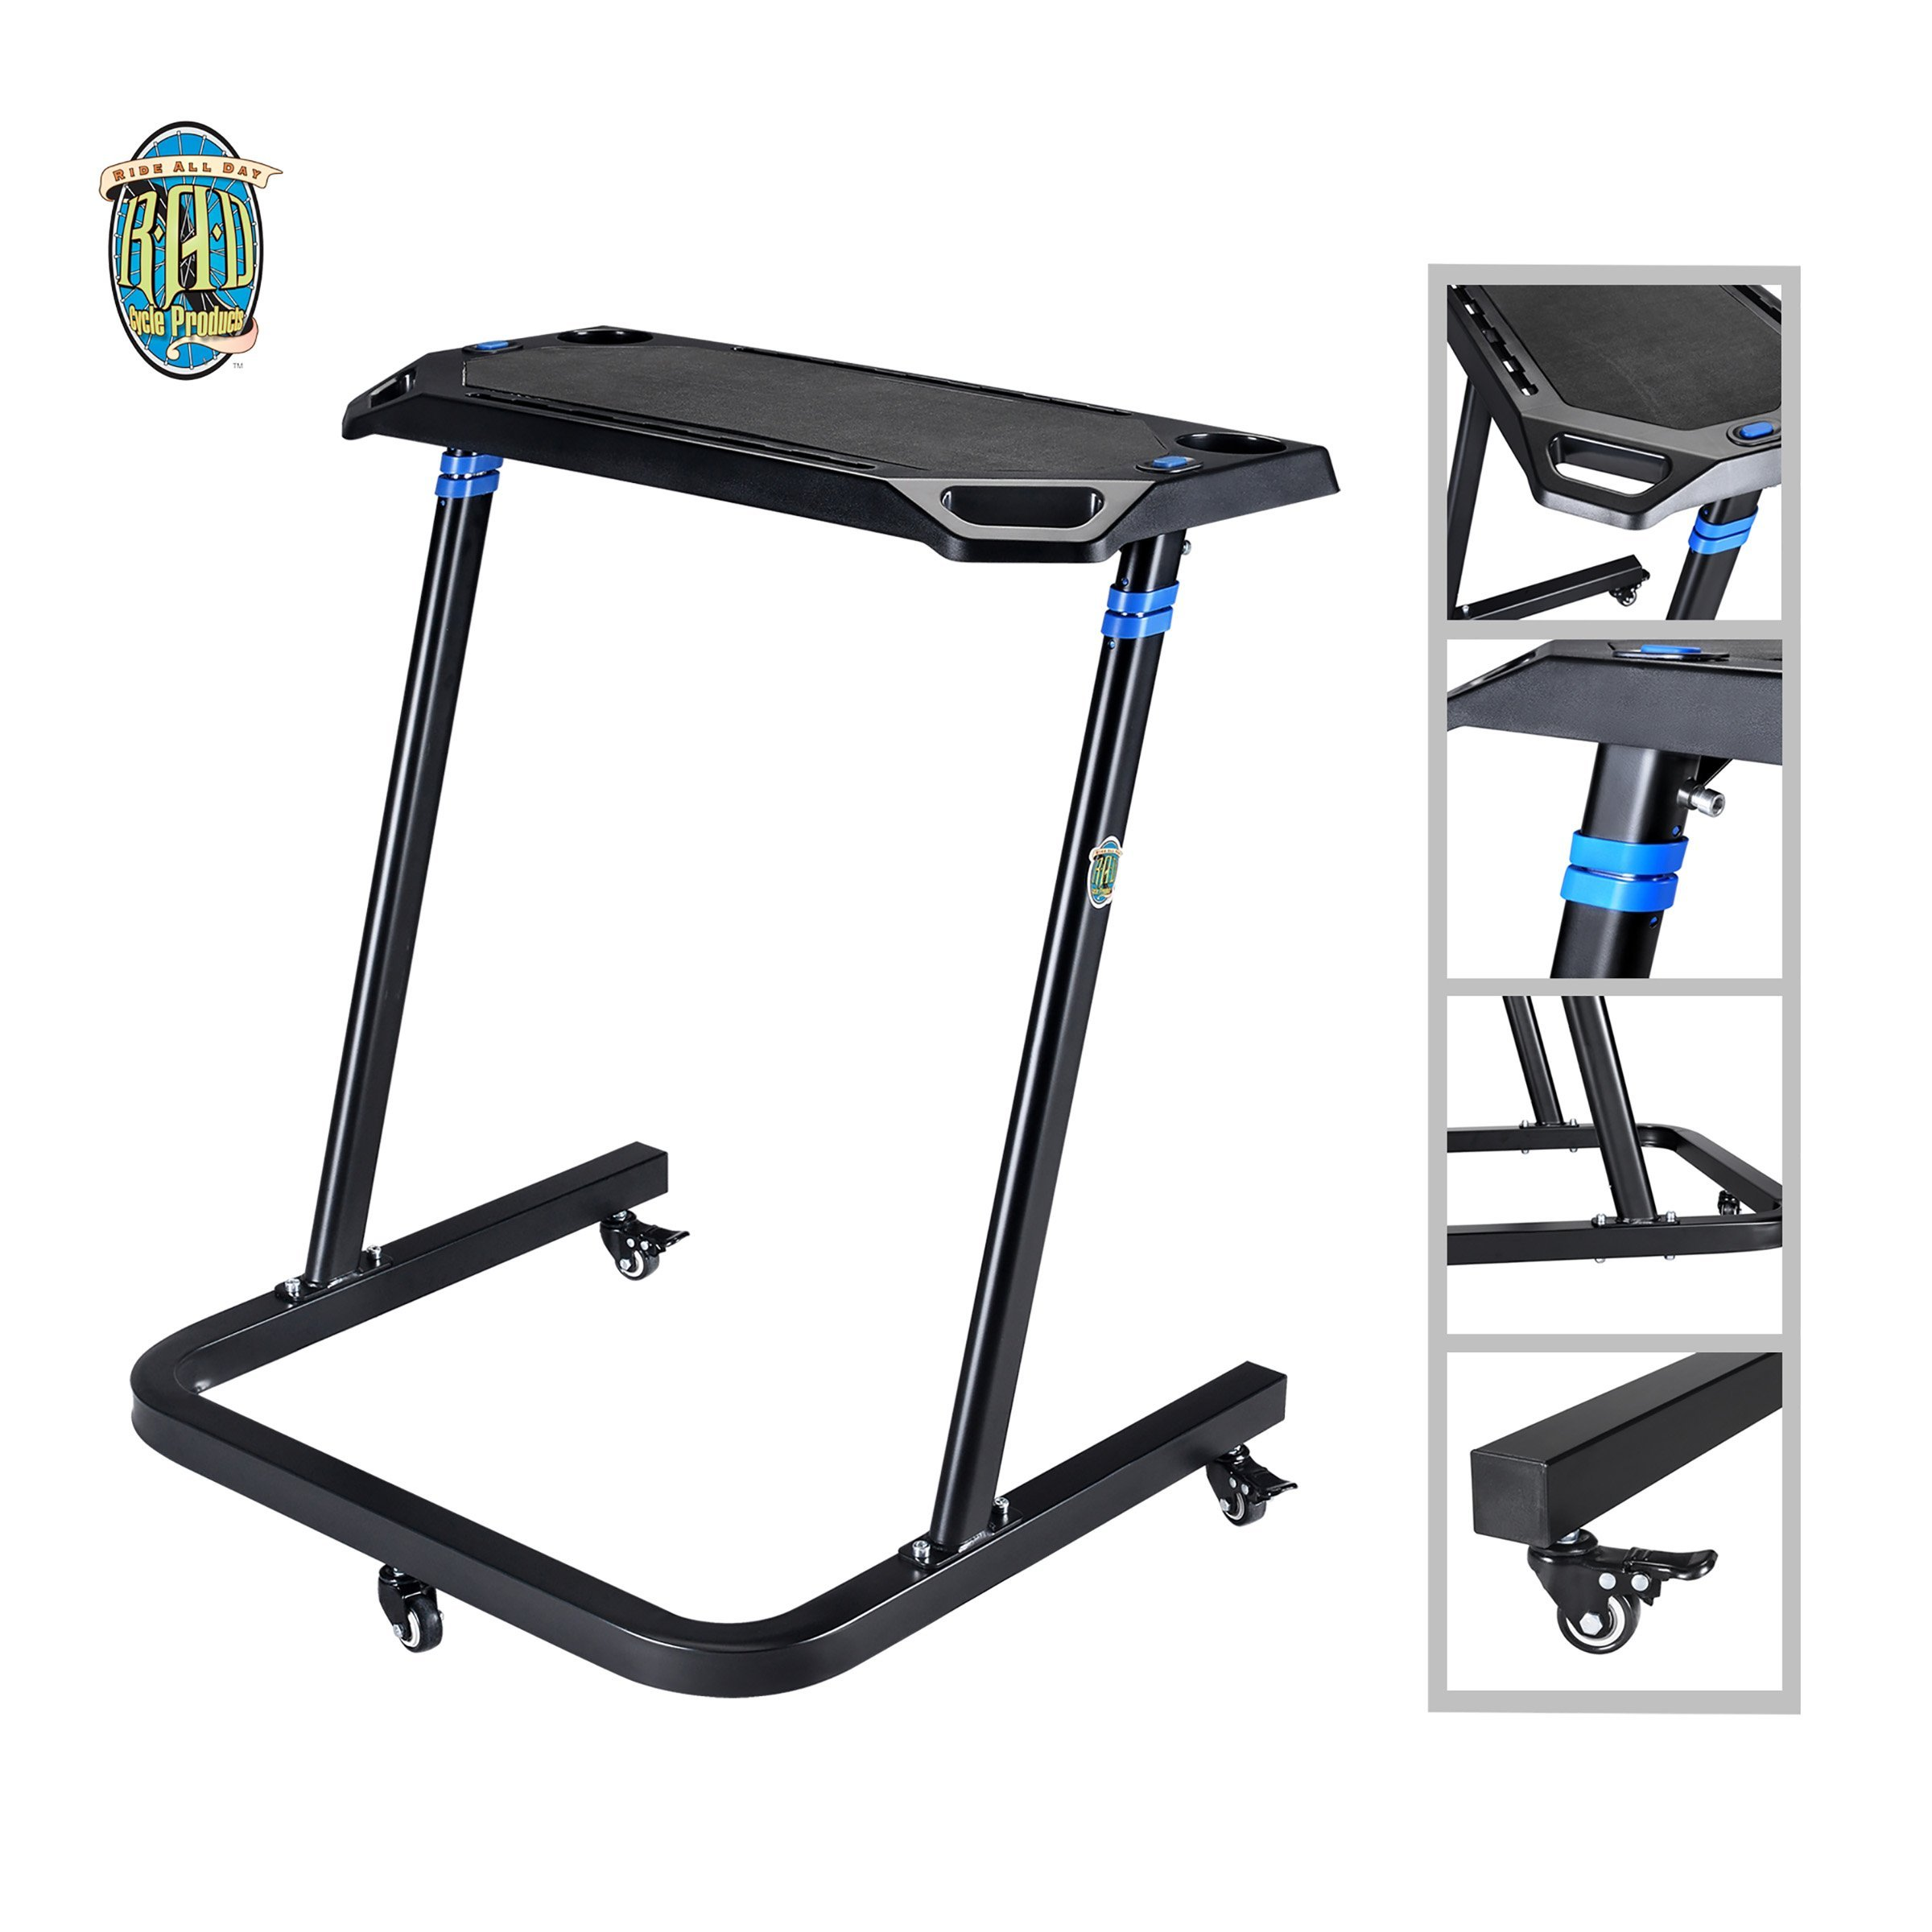 Portable Fitness Desk- Adjustable Height Workstation for Bikes or Standing-Work and Cycle Indoors on Laptop or Tablet by RAD Cycle Products by RAD Cycle Products